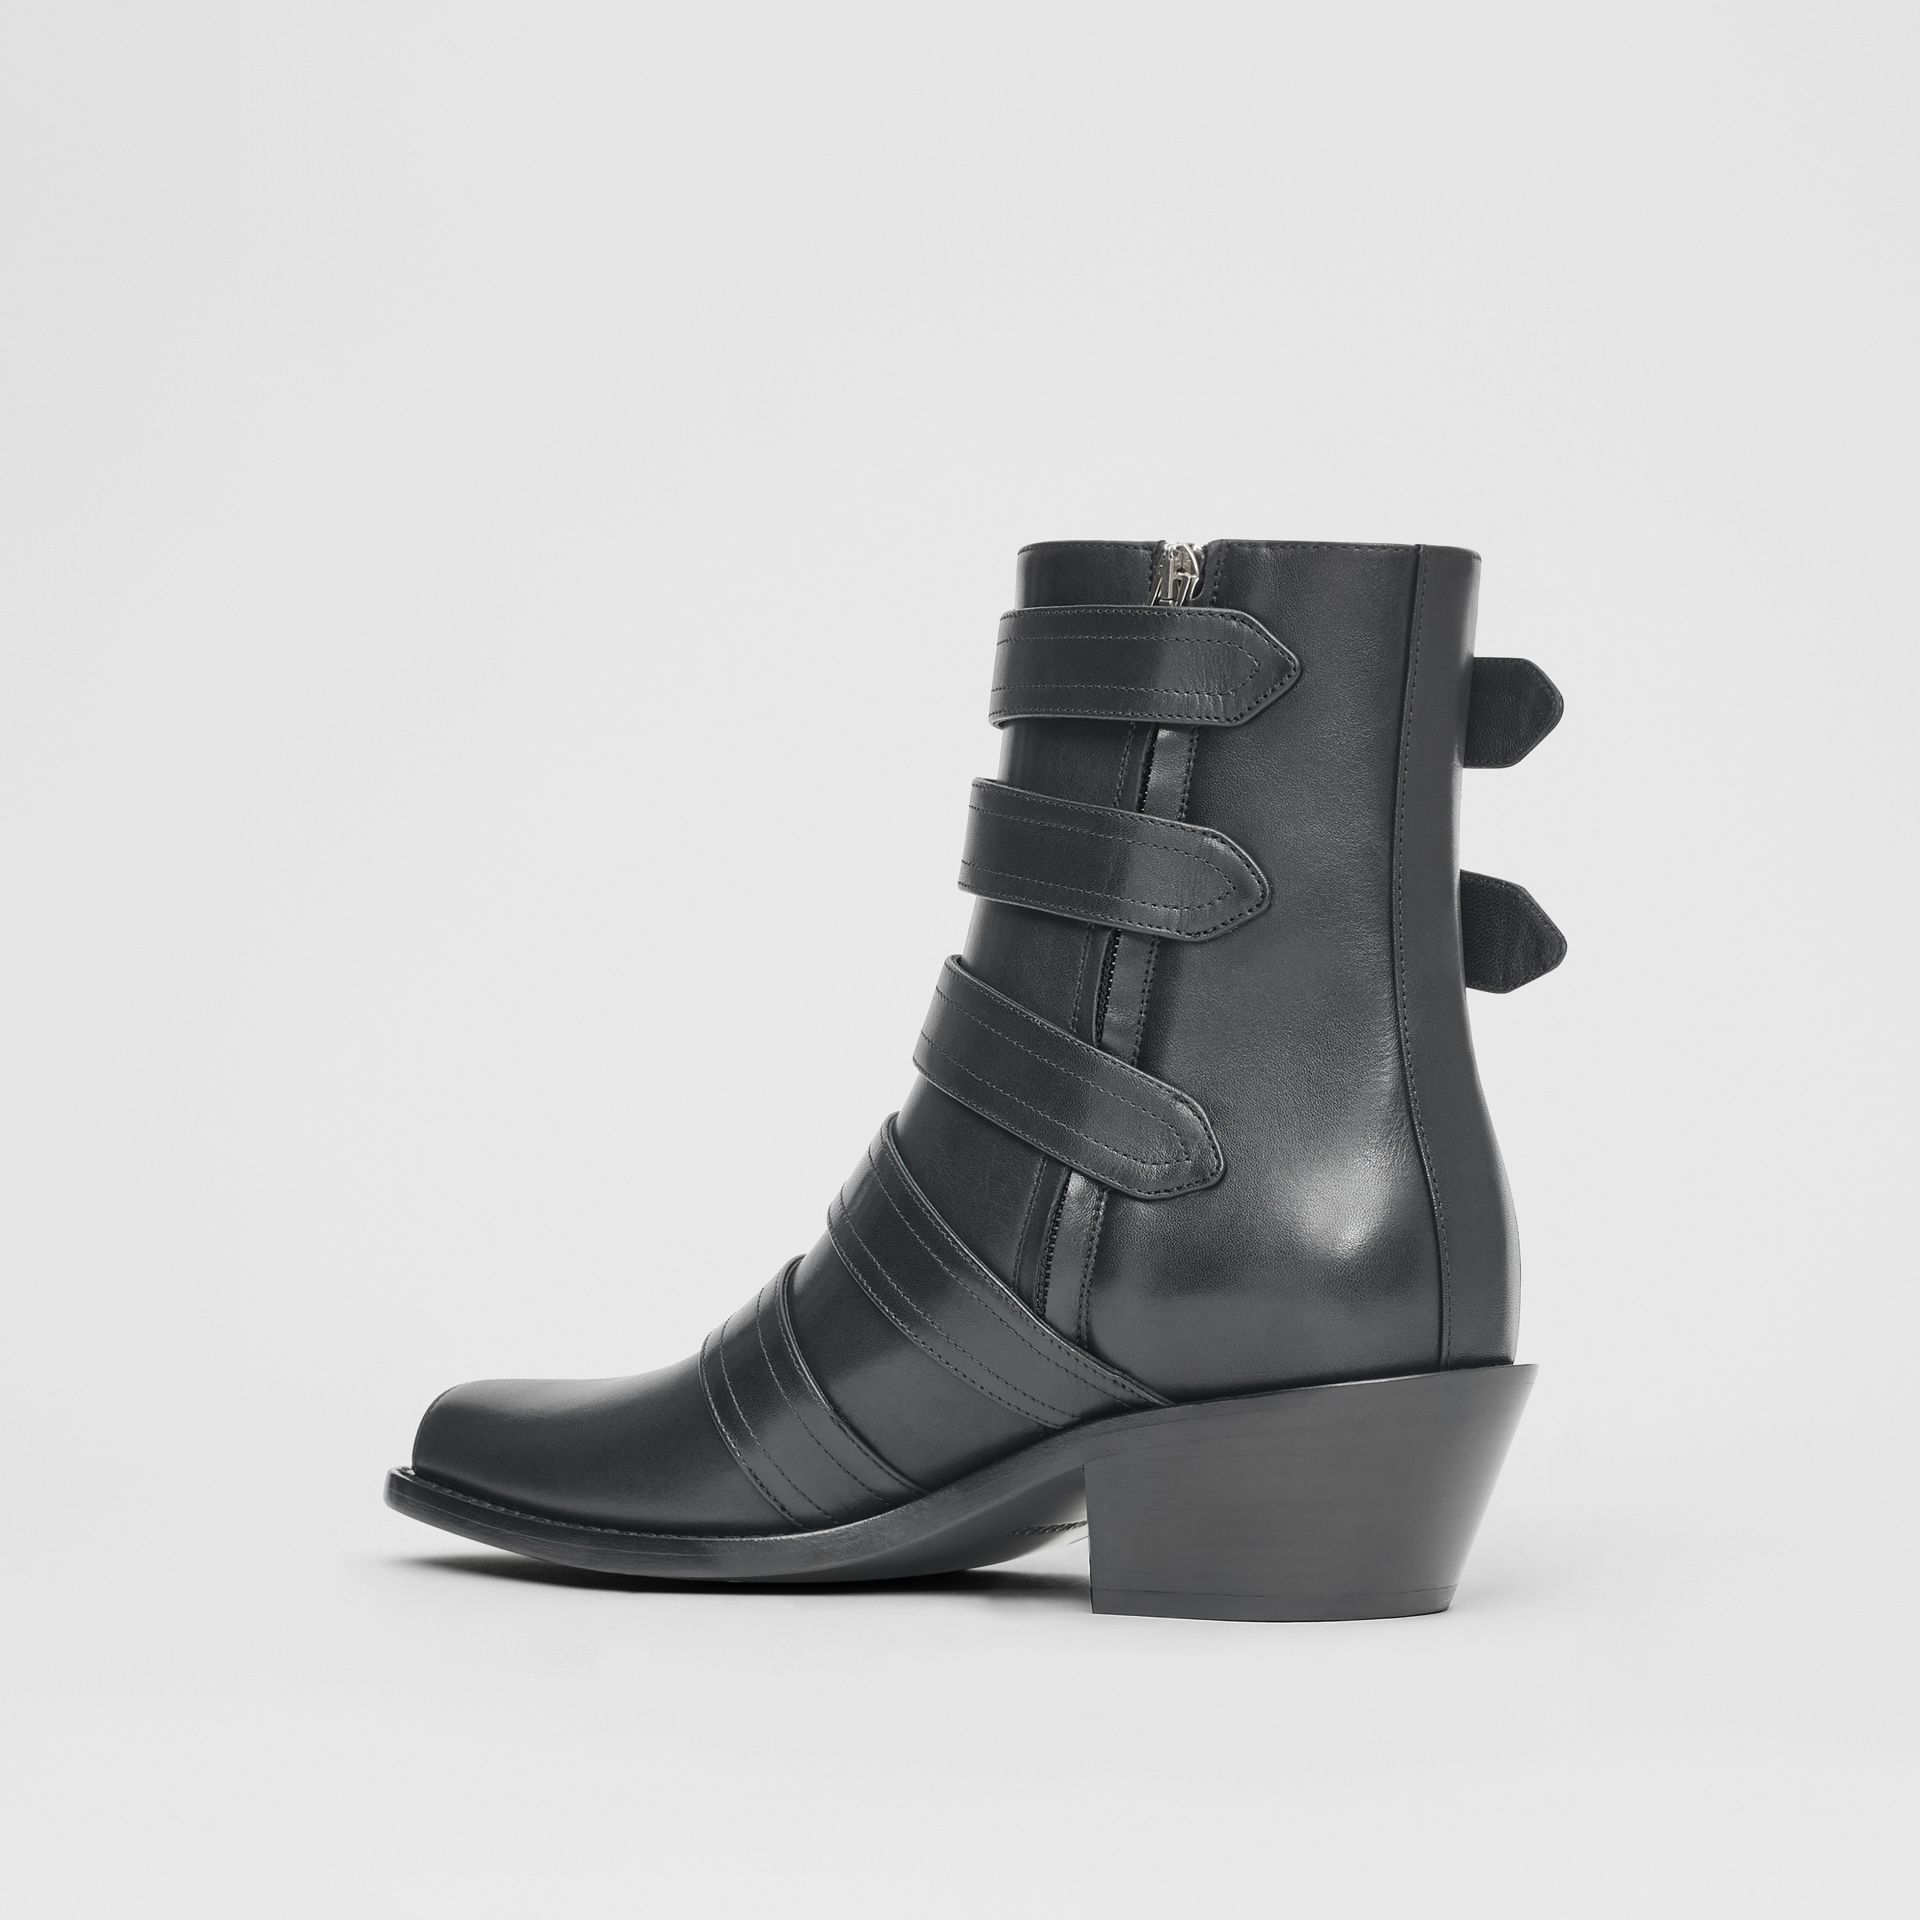 Buckled Leather Peep-toe Ankle Boots in Black - Women | Burberry - gallery image 5